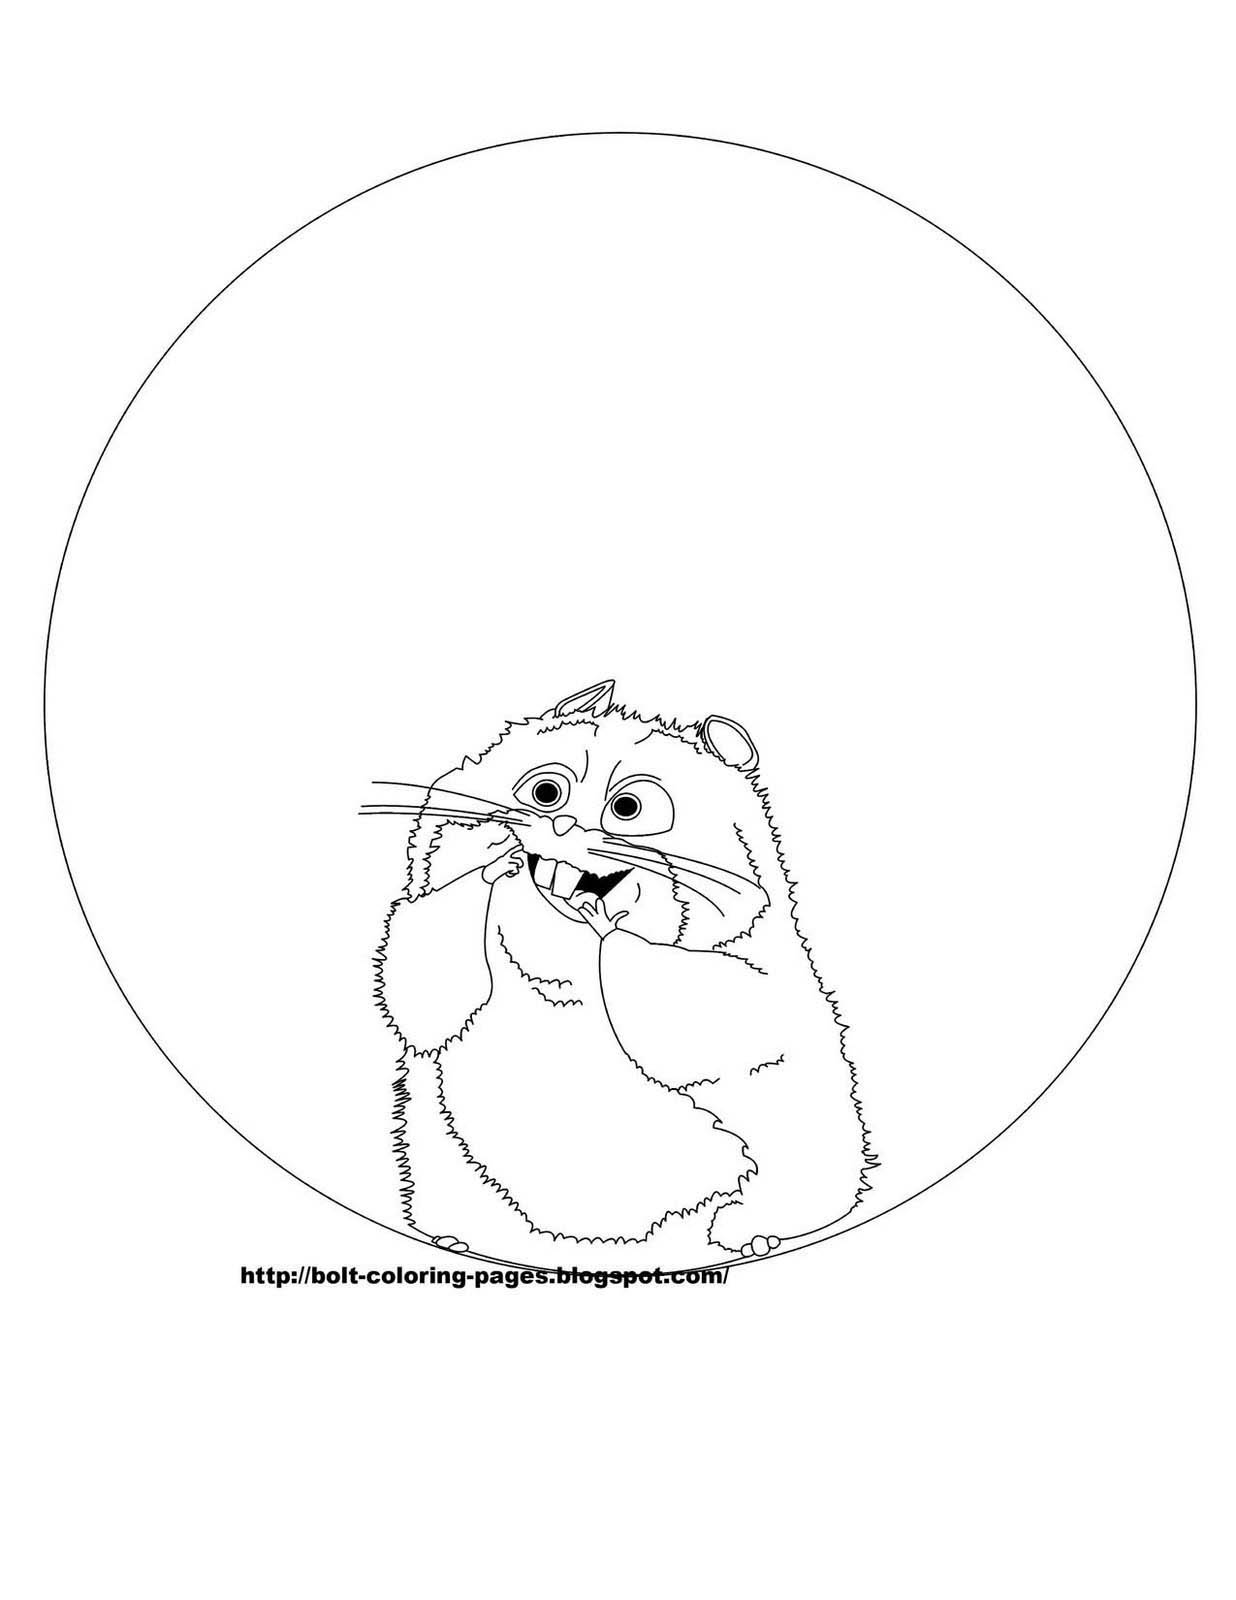 Bolt coloring pages rhino